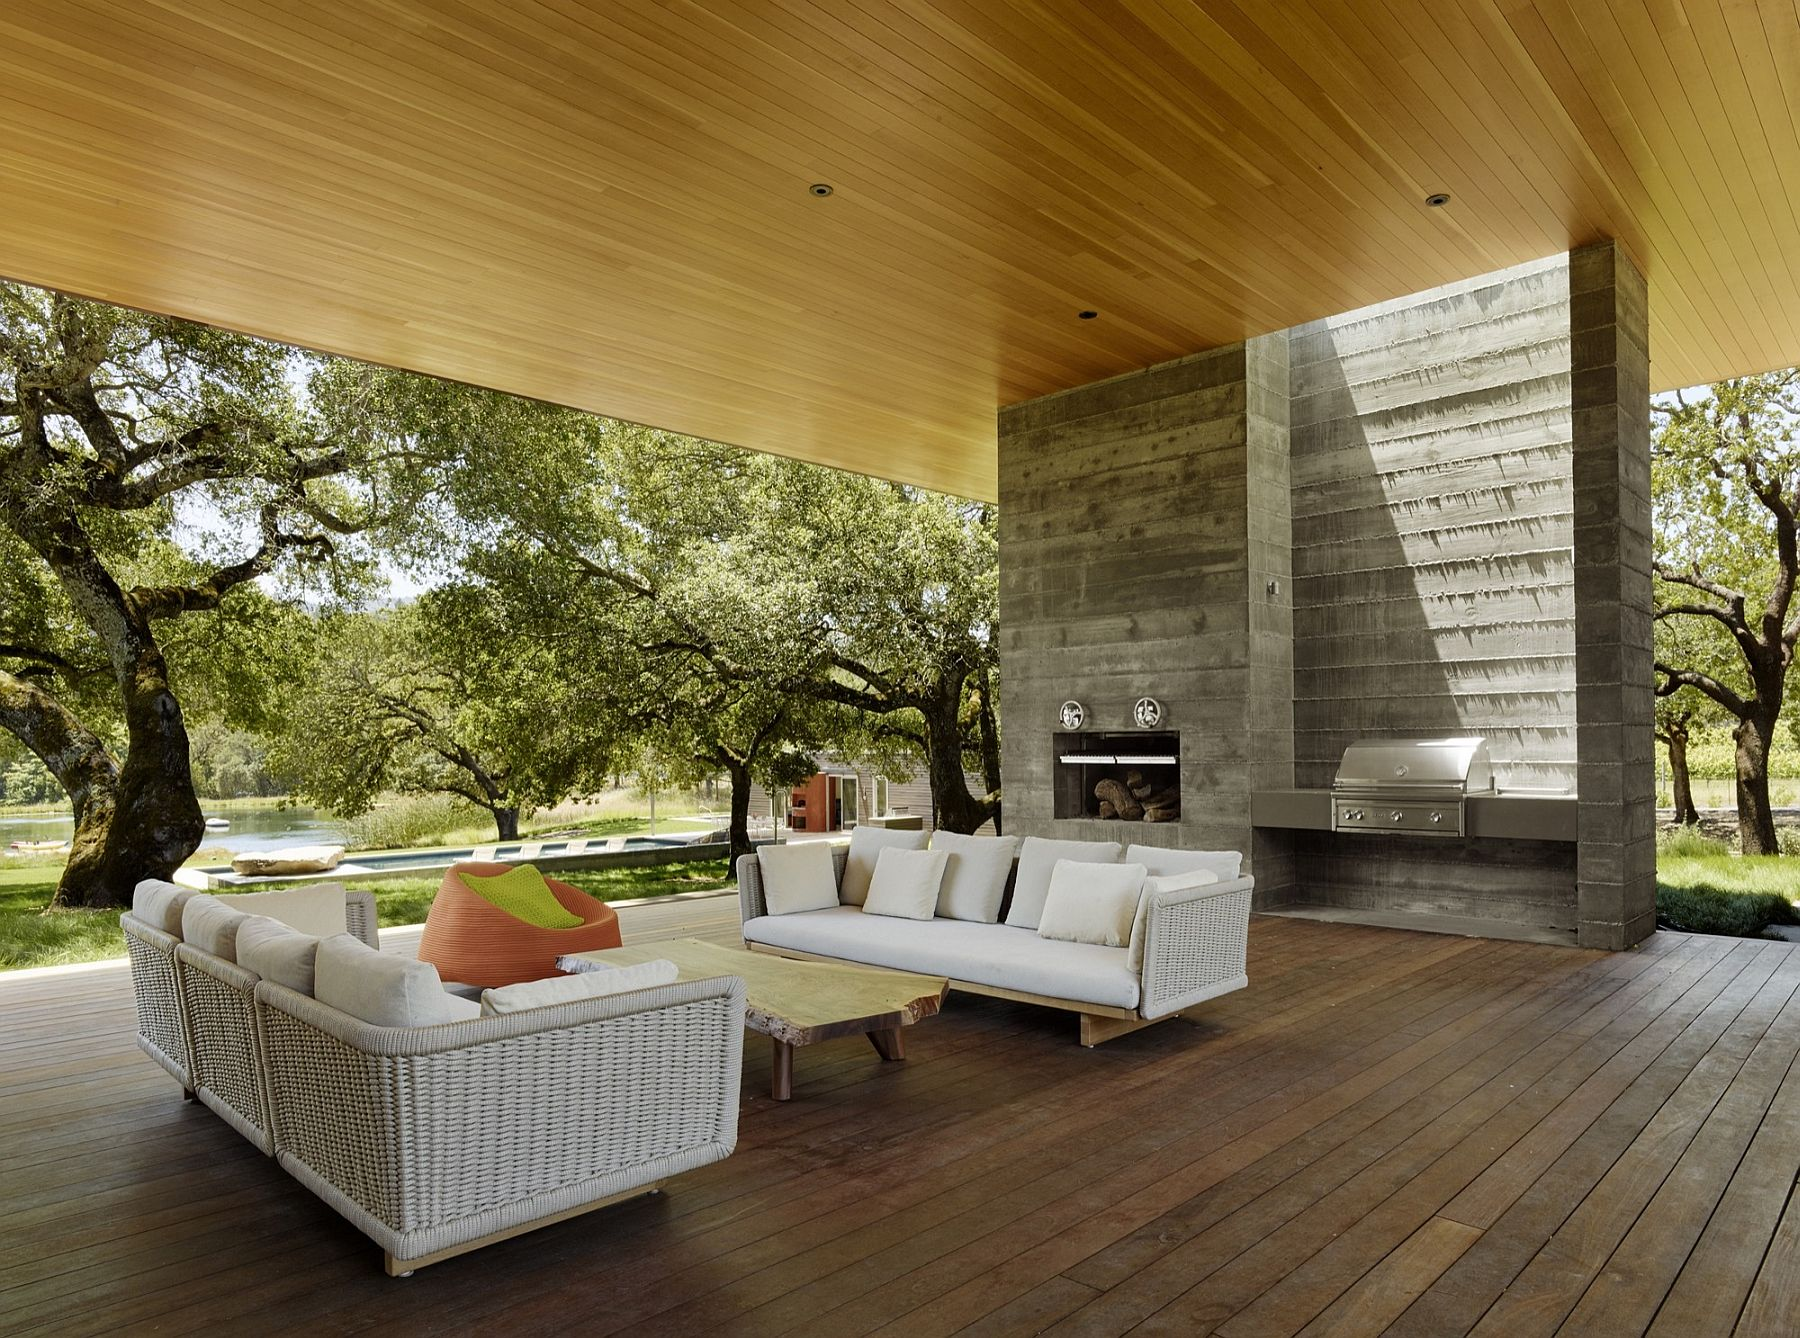 Summer outdoor living at its sustainable best sonoma Outdoor living areas images